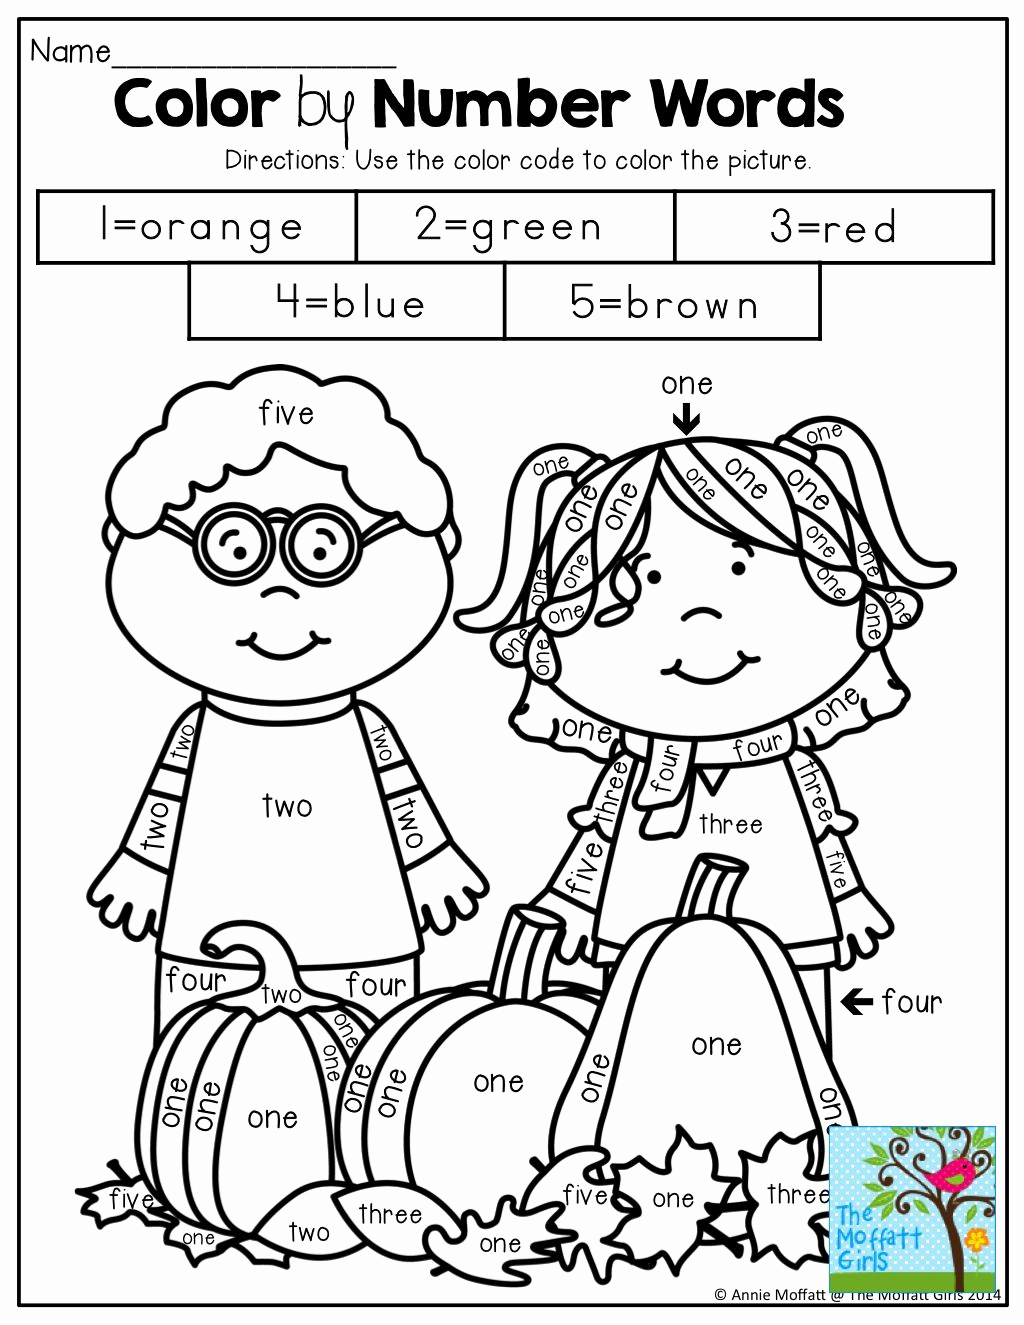 Color by Number Worksheets Kindergarten Awesome Color by Number Words and tons Of Other Fun Printables for